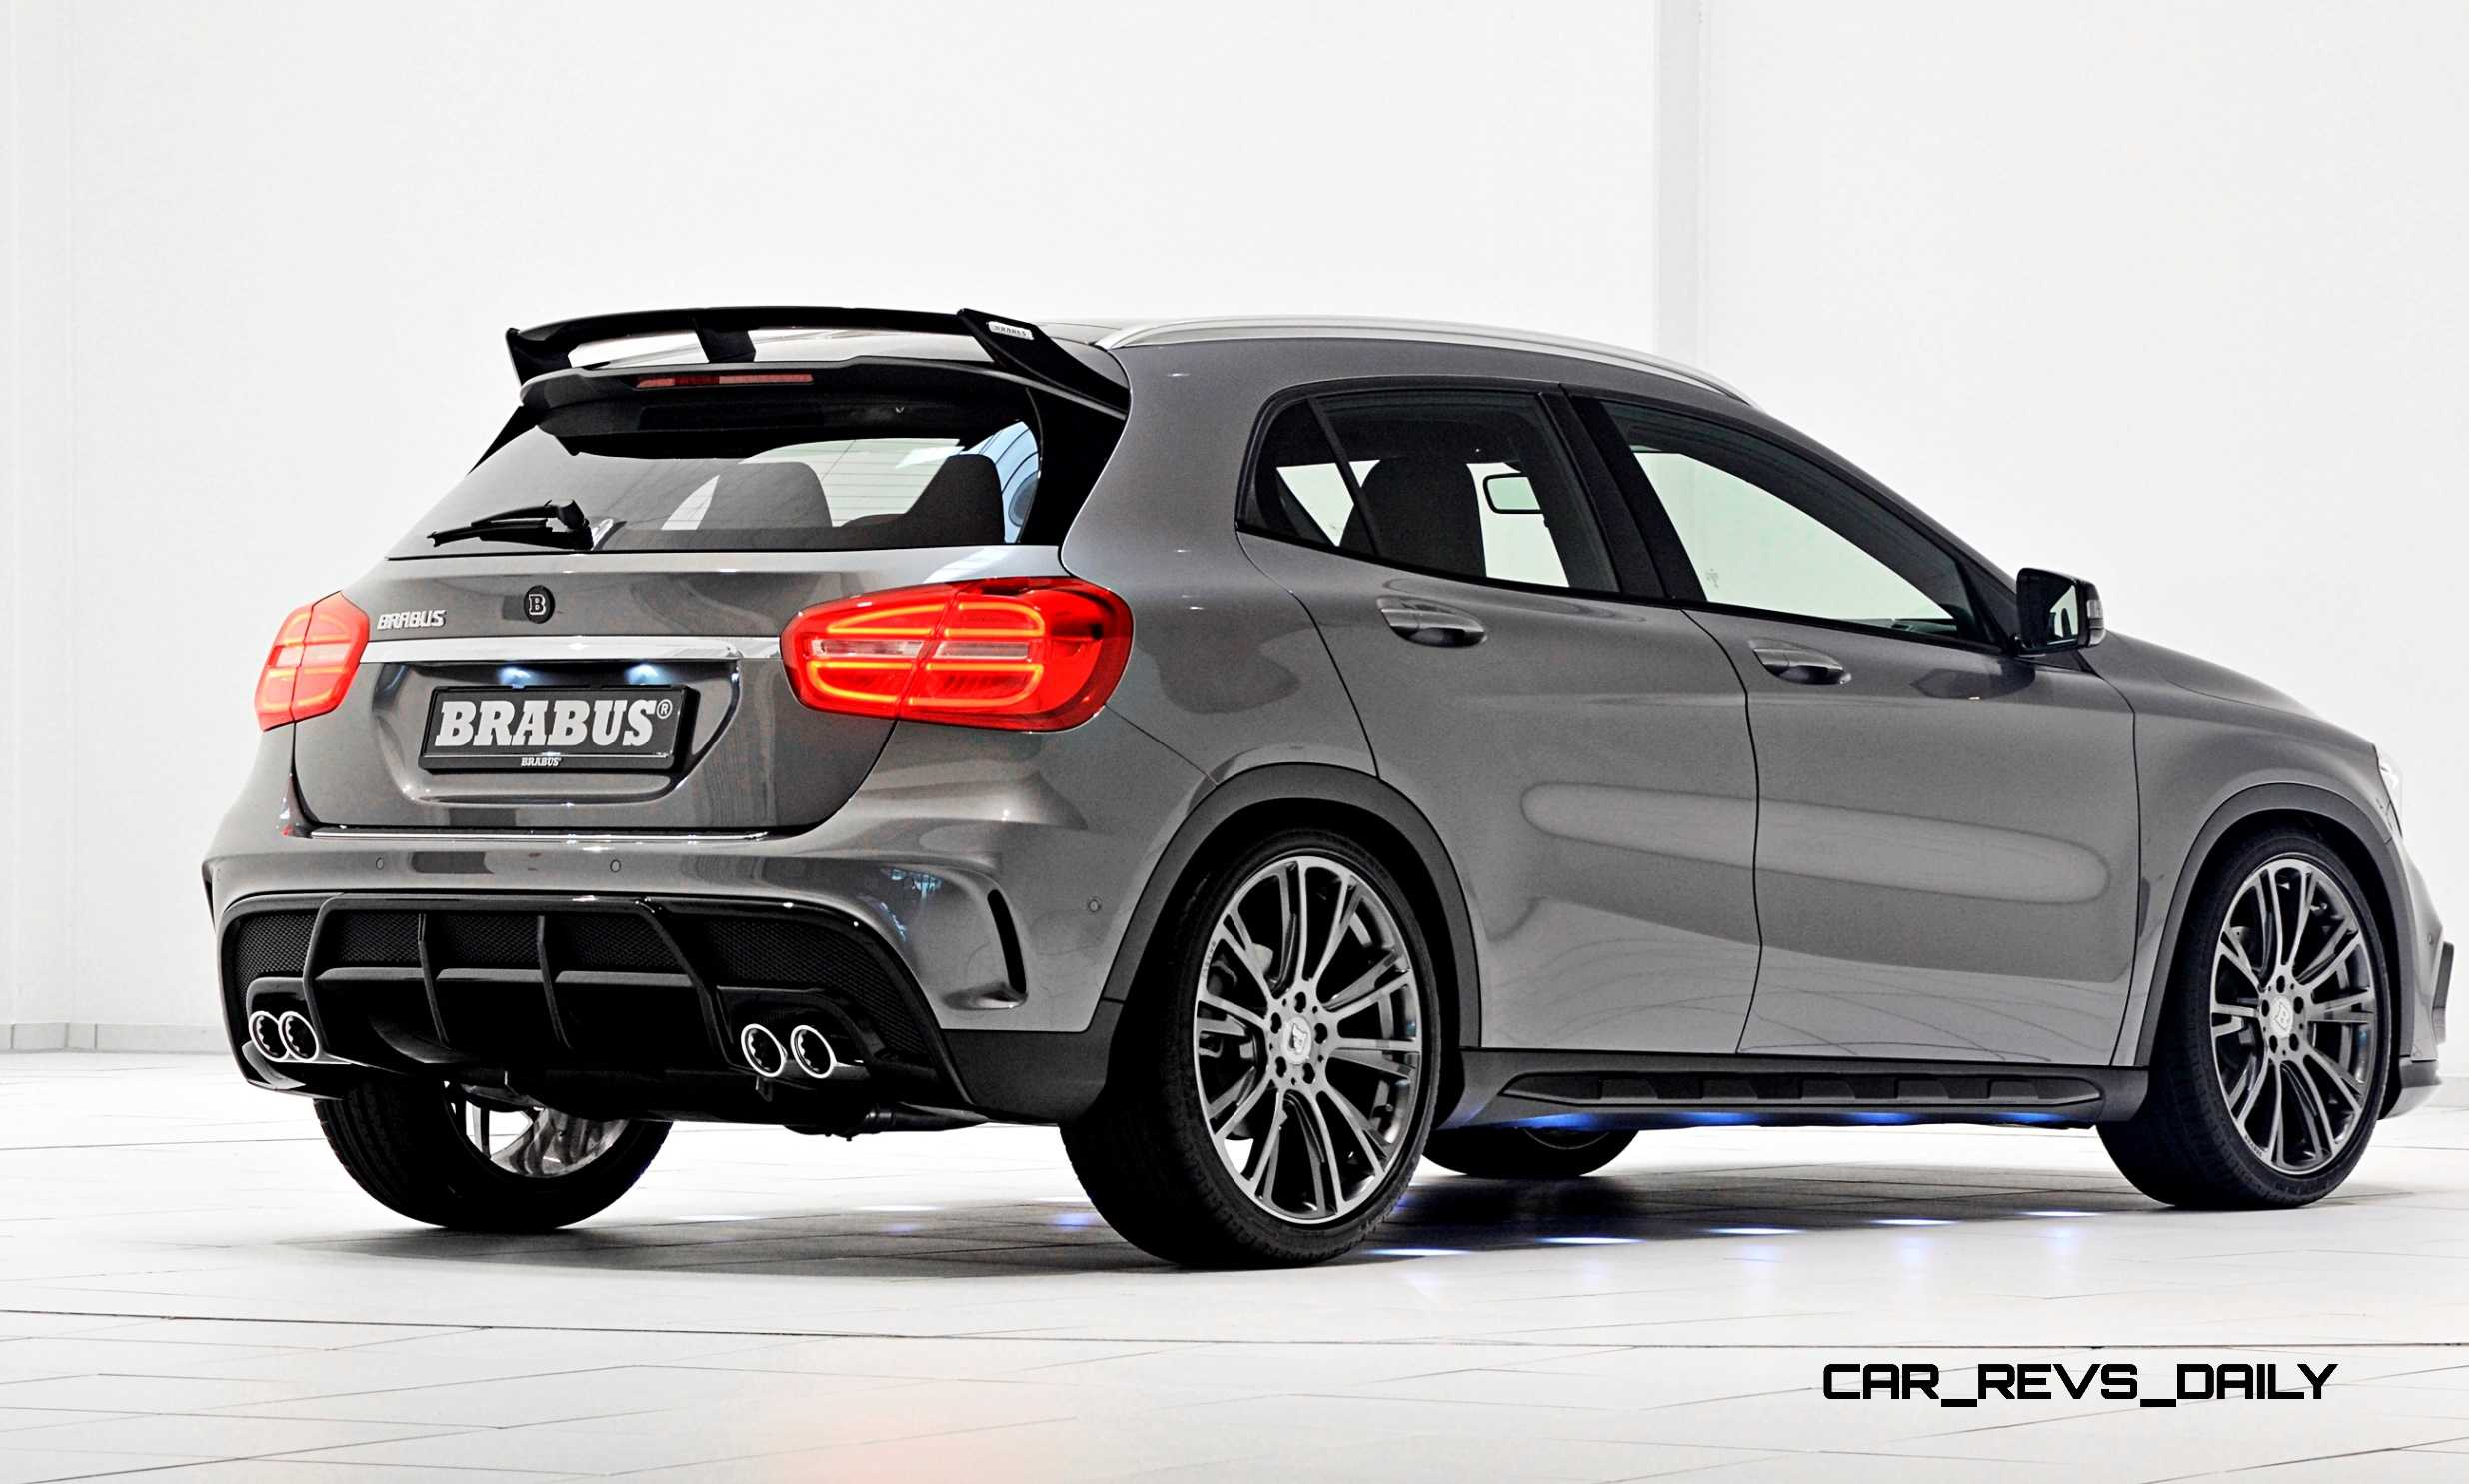 400hp 2015 brabus mercedes benz gla hunkers low on 21s aero kit. Black Bedroom Furniture Sets. Home Design Ideas